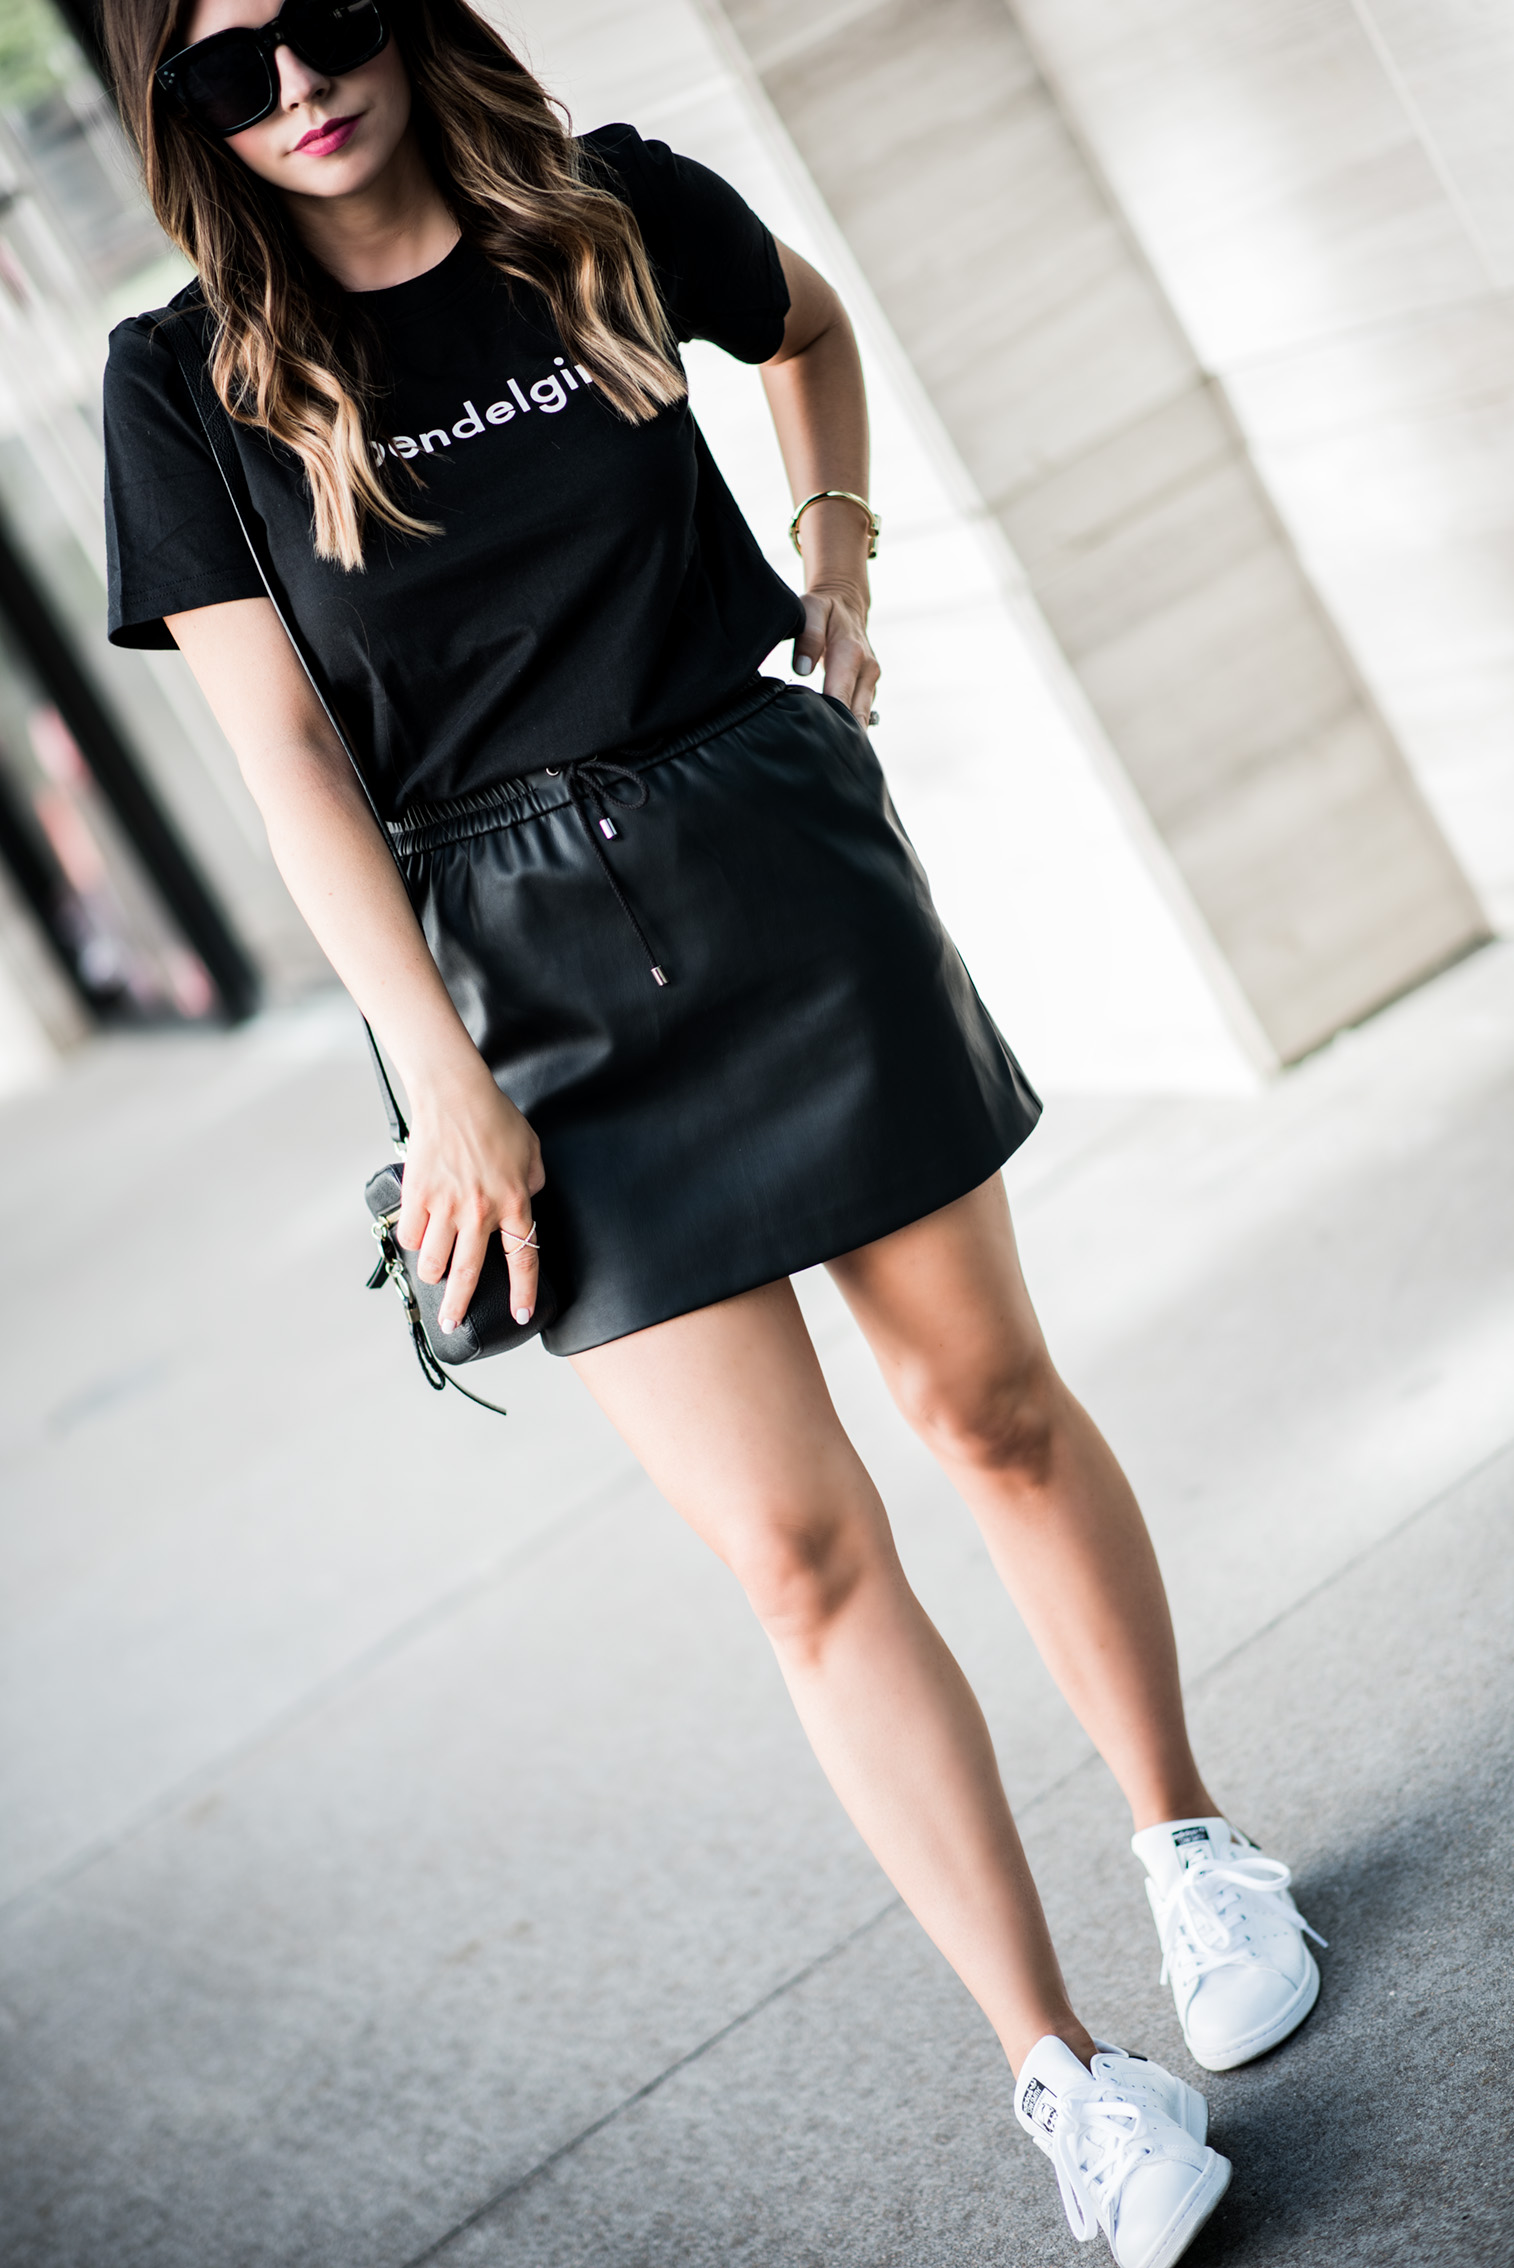 Tiffany Jais Houston fashion and lifestyle blogger   The best Memorial Day sales   All black outfits, casual outfit ideas, bendelgirl tee